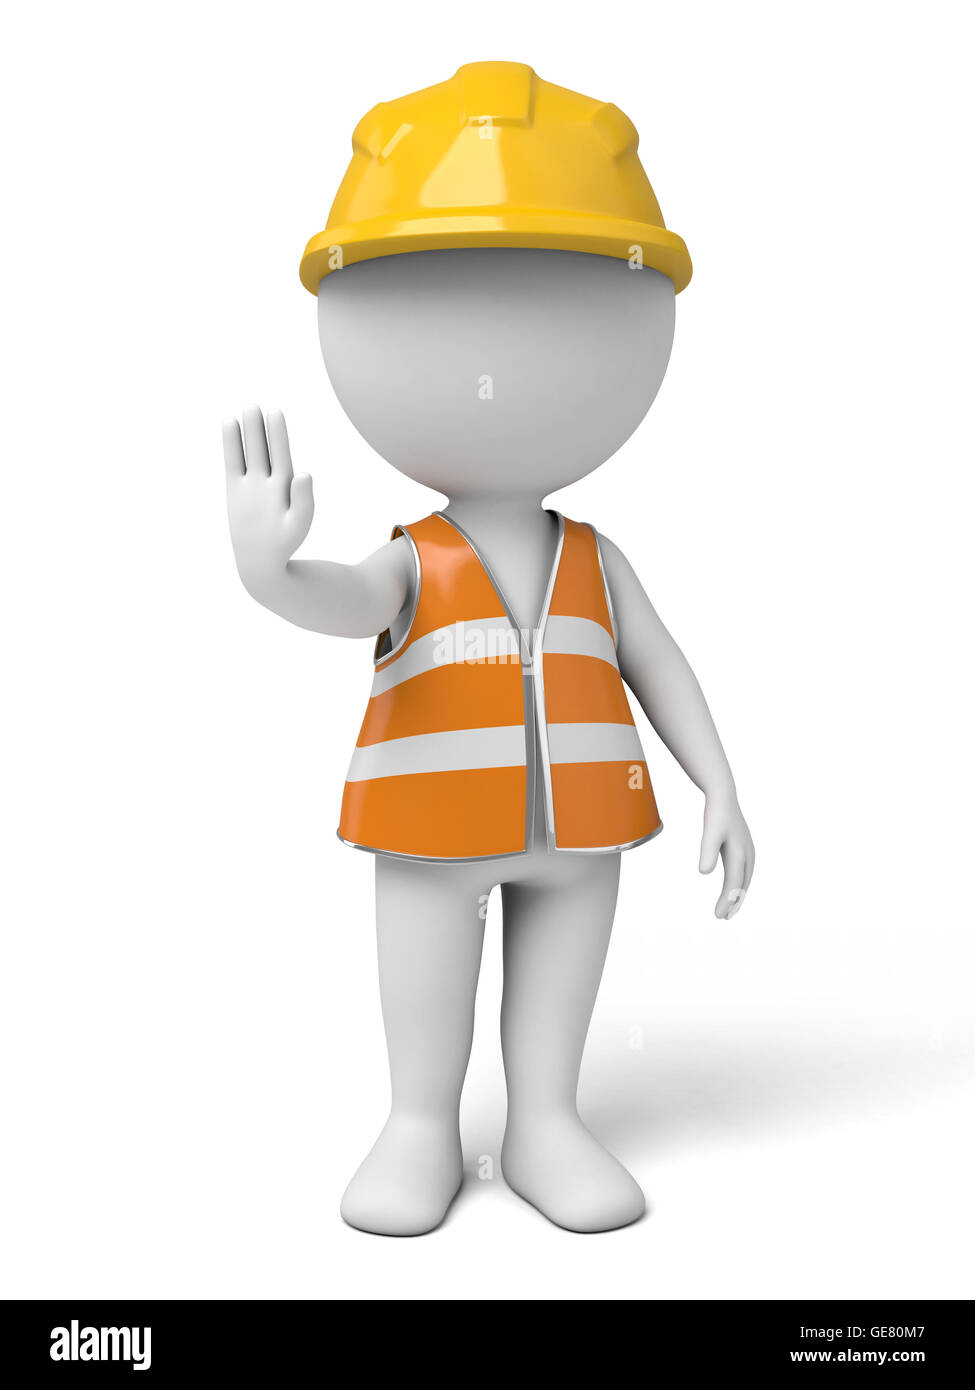 The 3d guy is a traffic management assistant - Stock Image